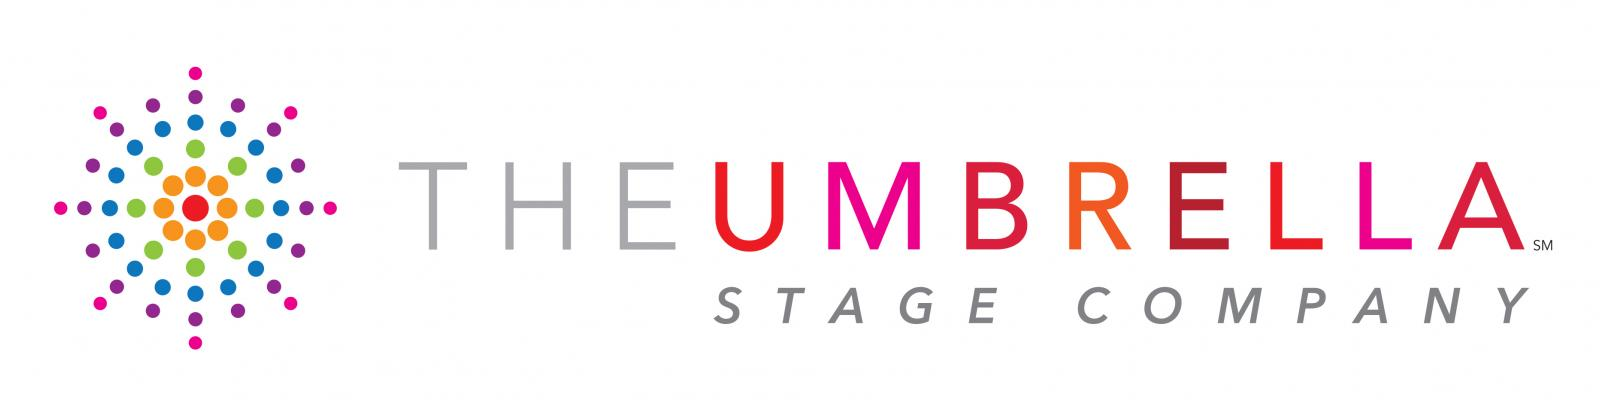 The Umbrella Stage Company Header